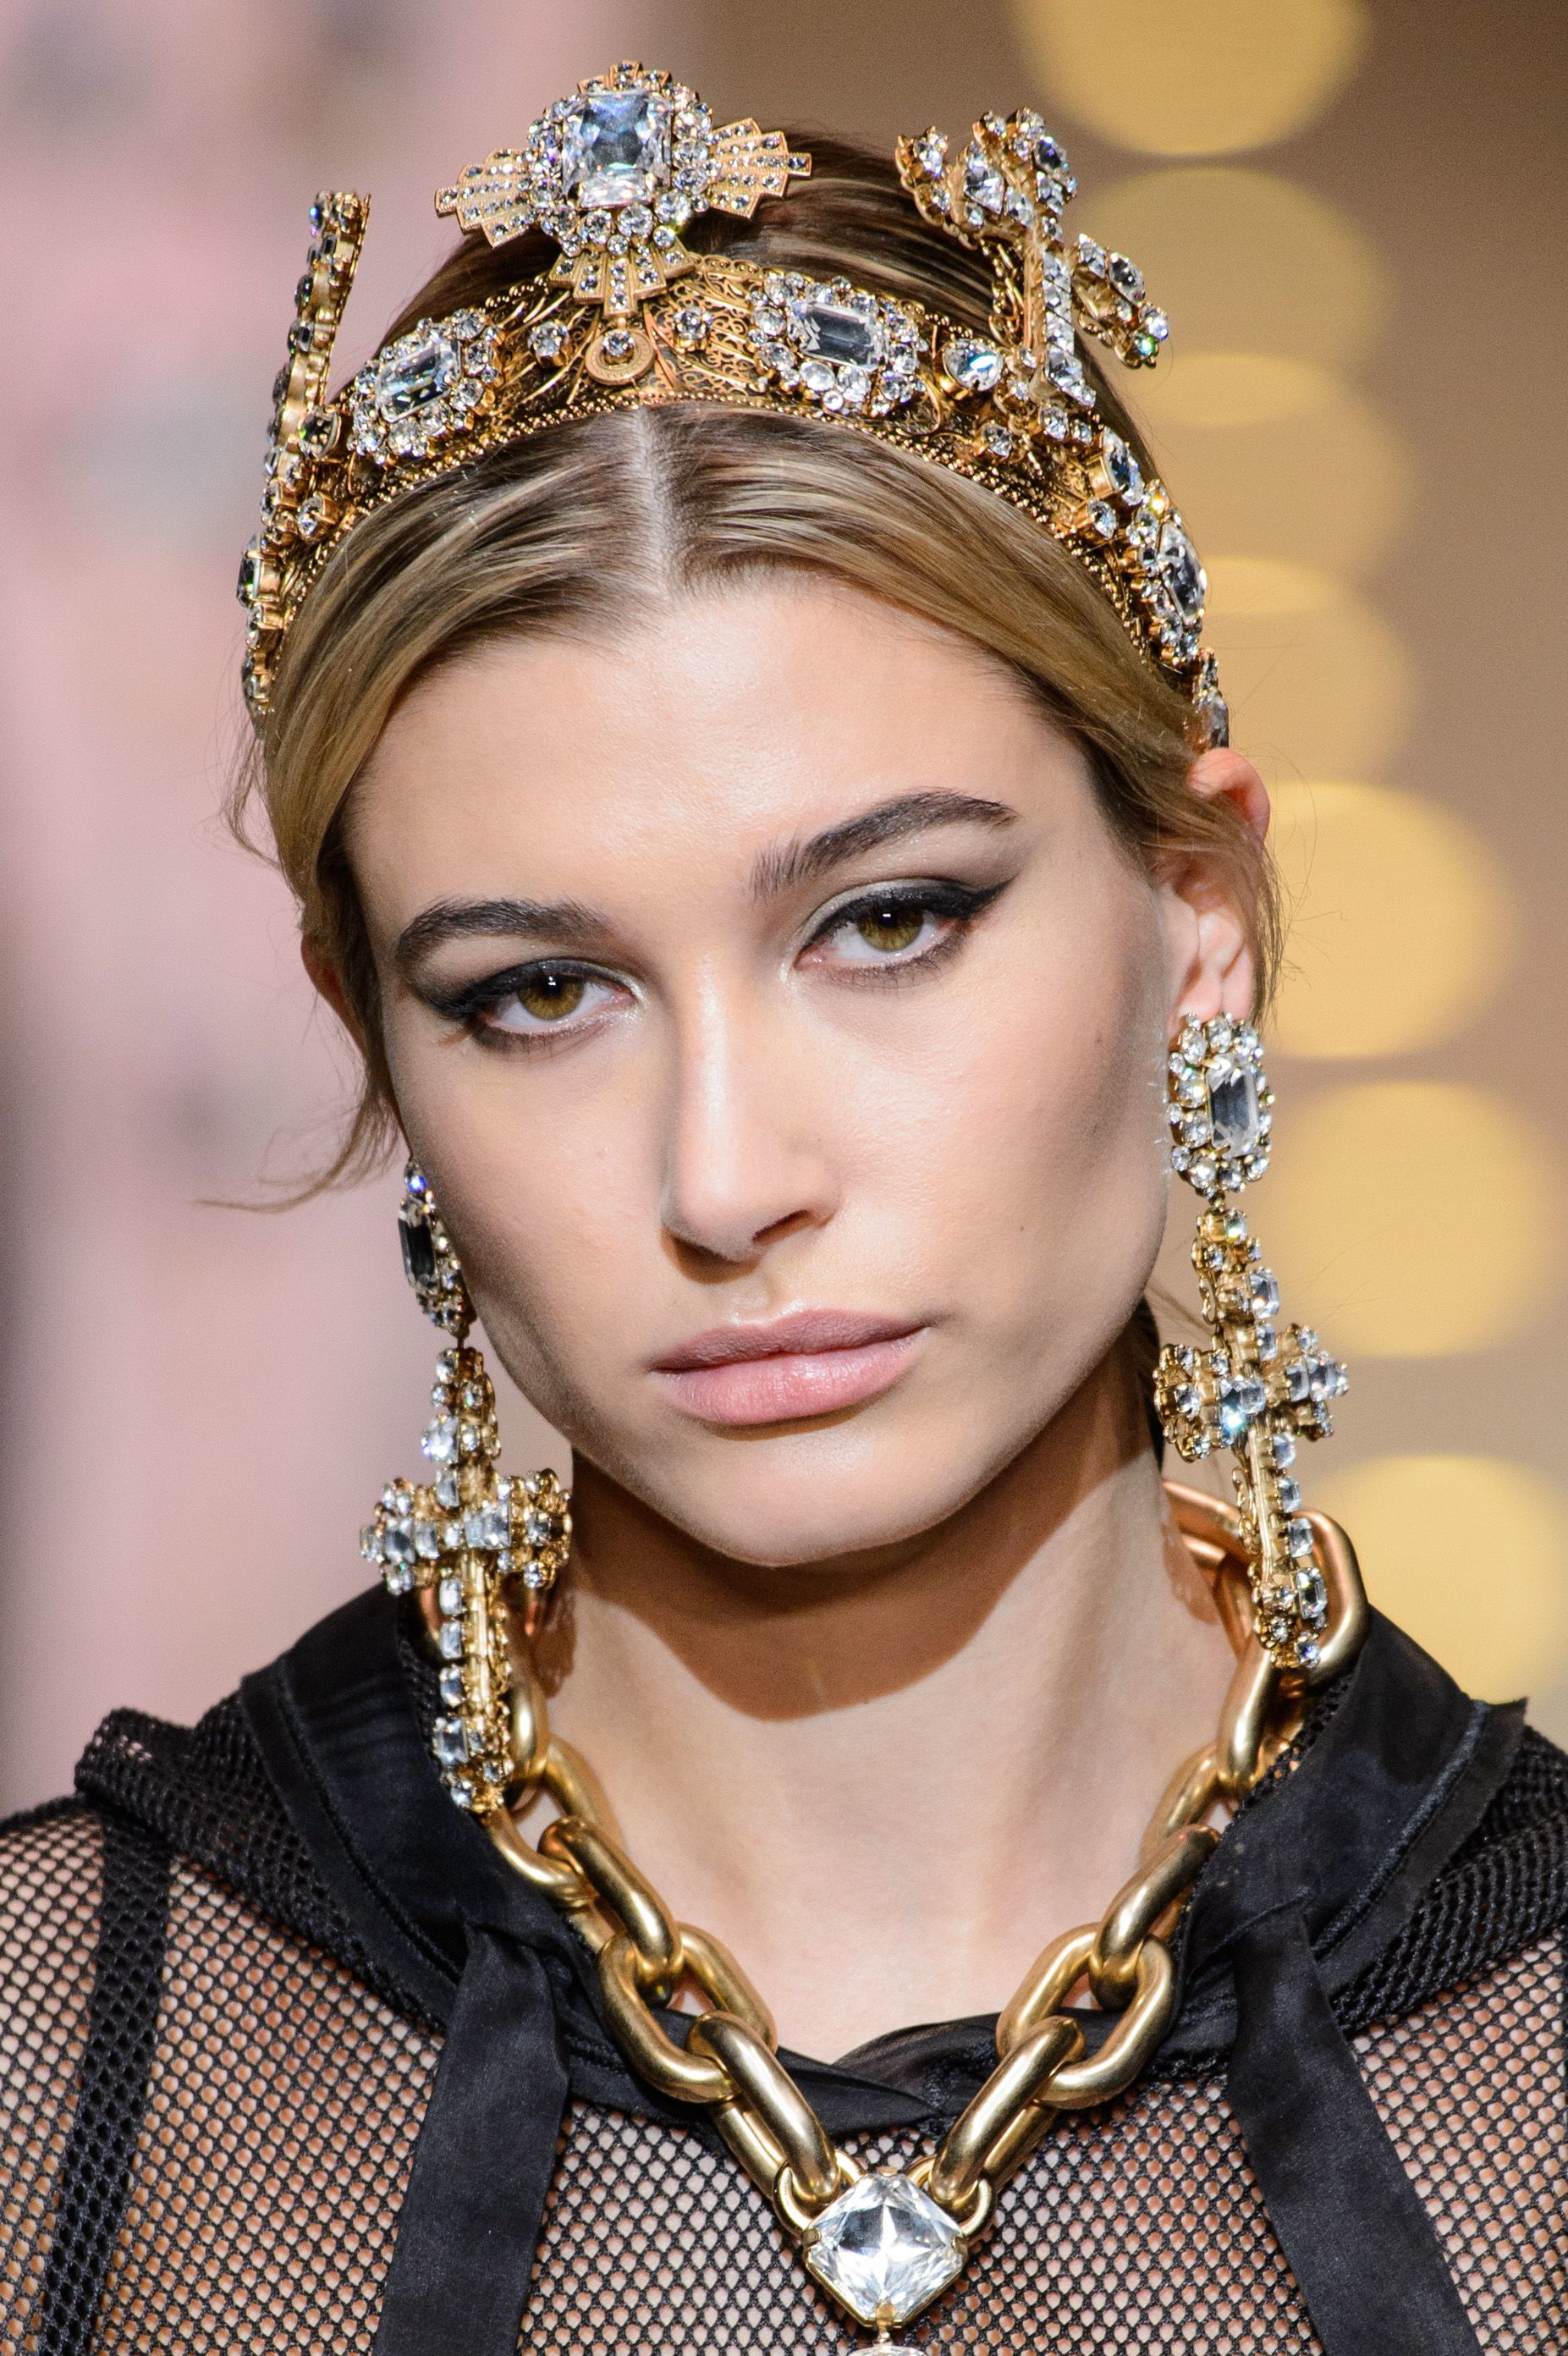 close up shot of hailey baldwin with a tiara hair accessory, wearing black lace, gold necklace and walking on the runway